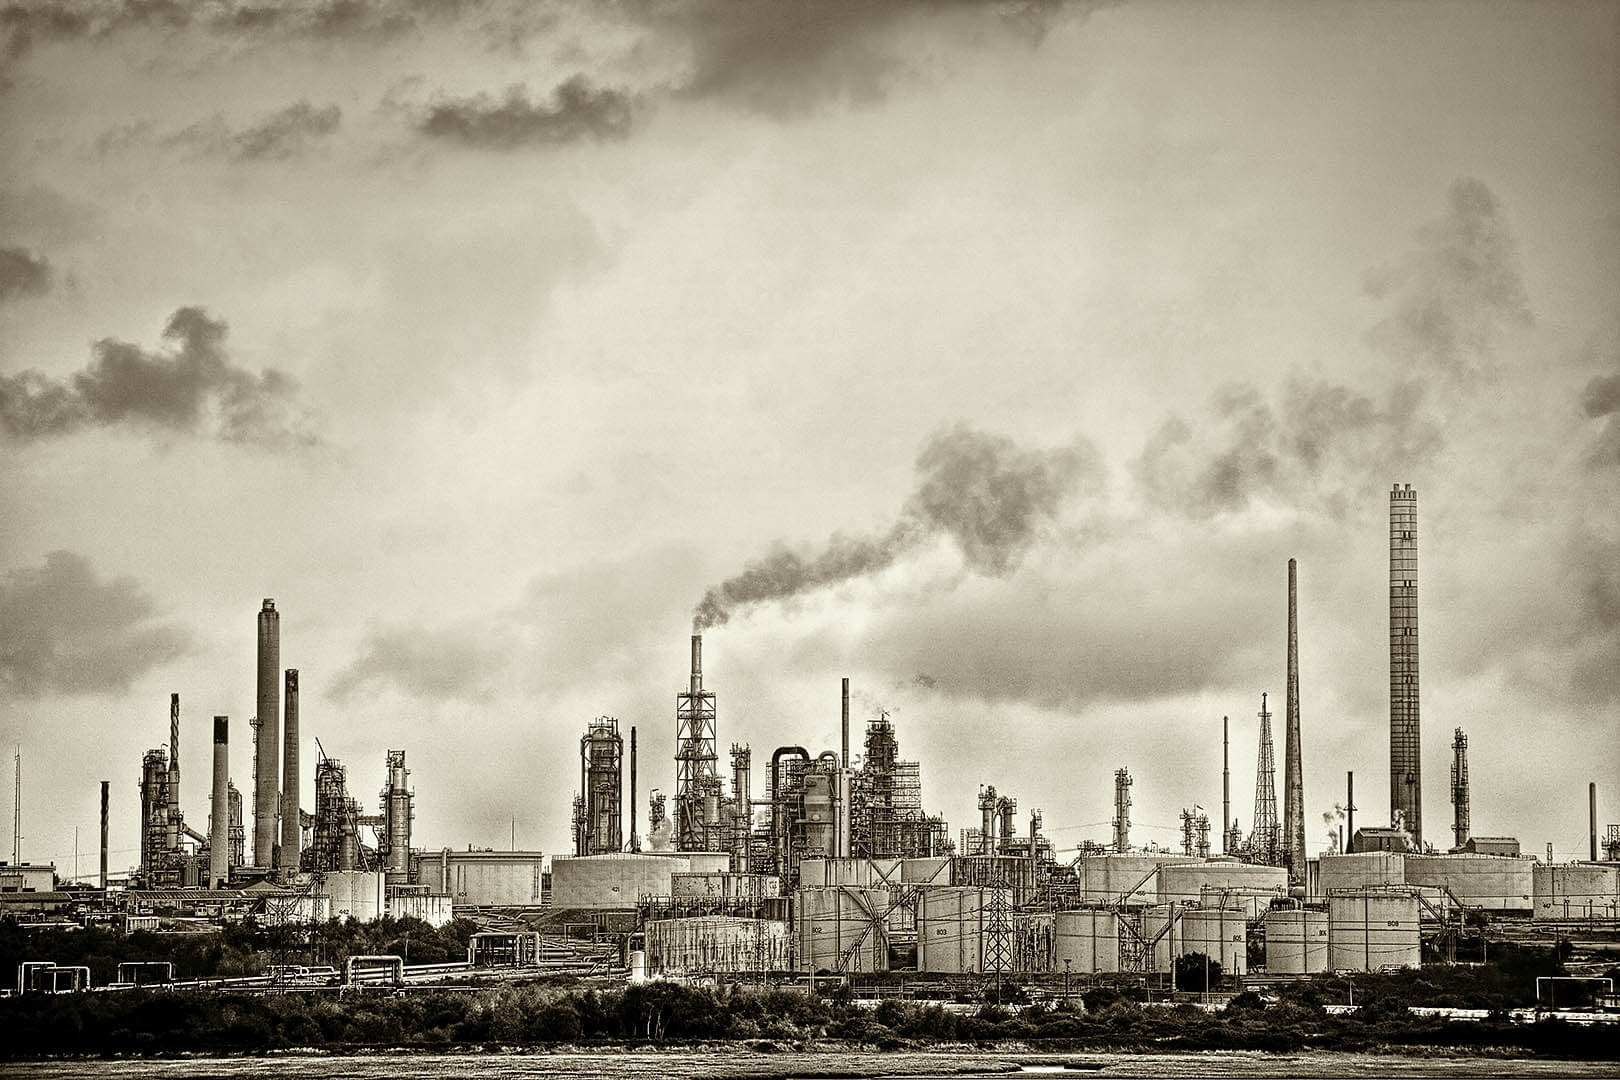 Fawley Refinery I